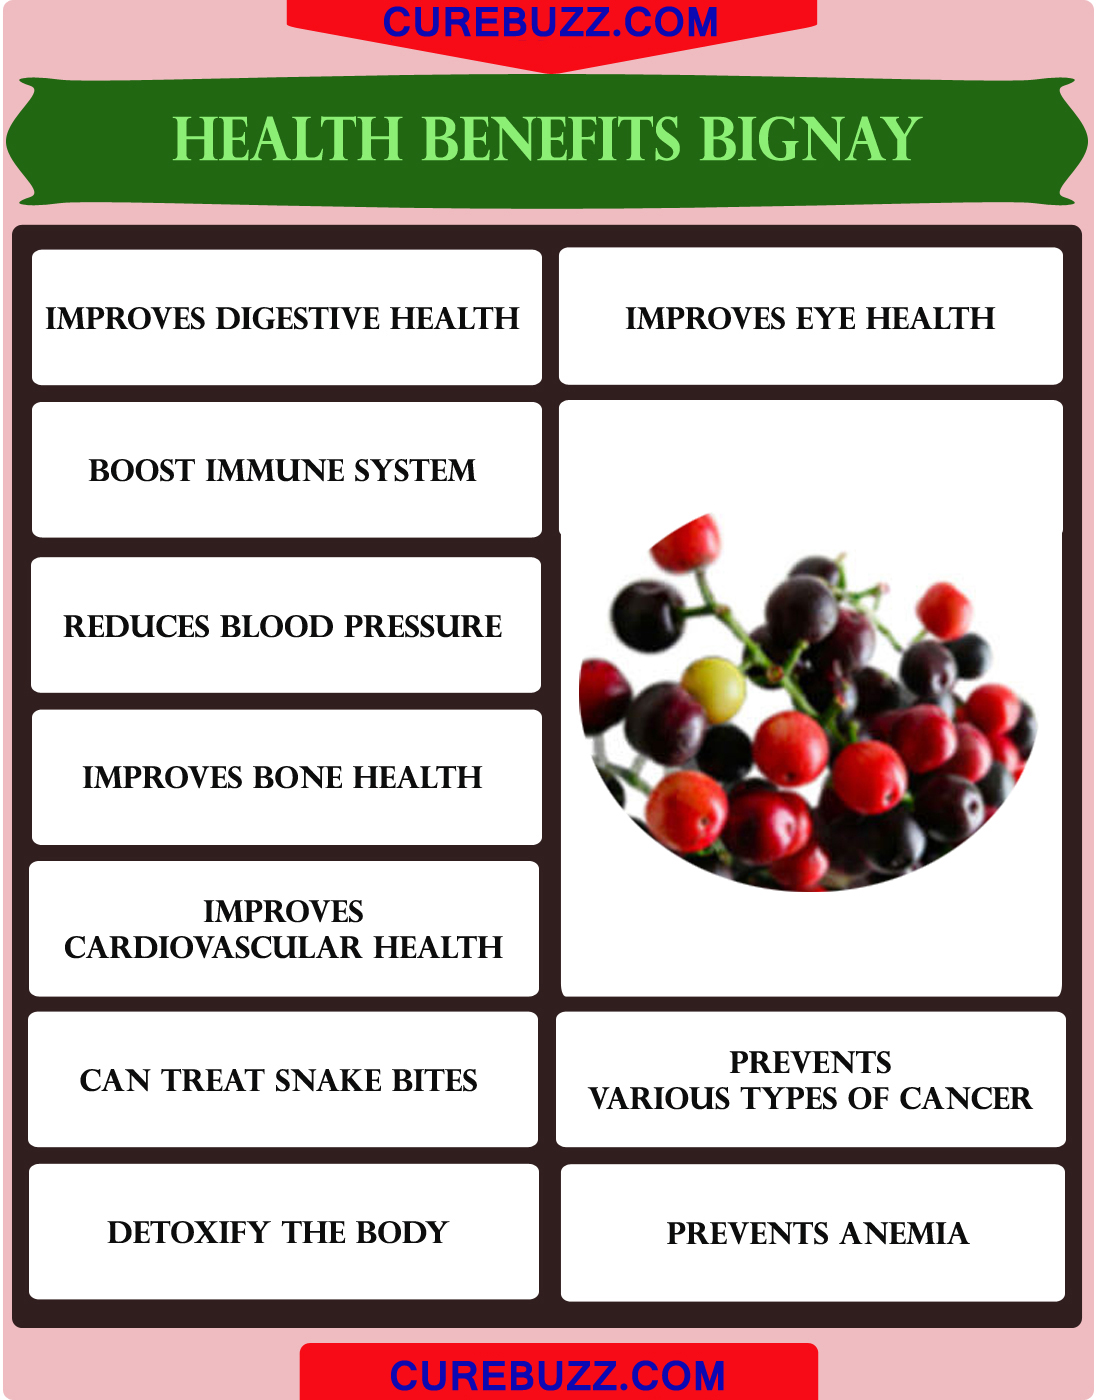 Health Benefits of Bignay